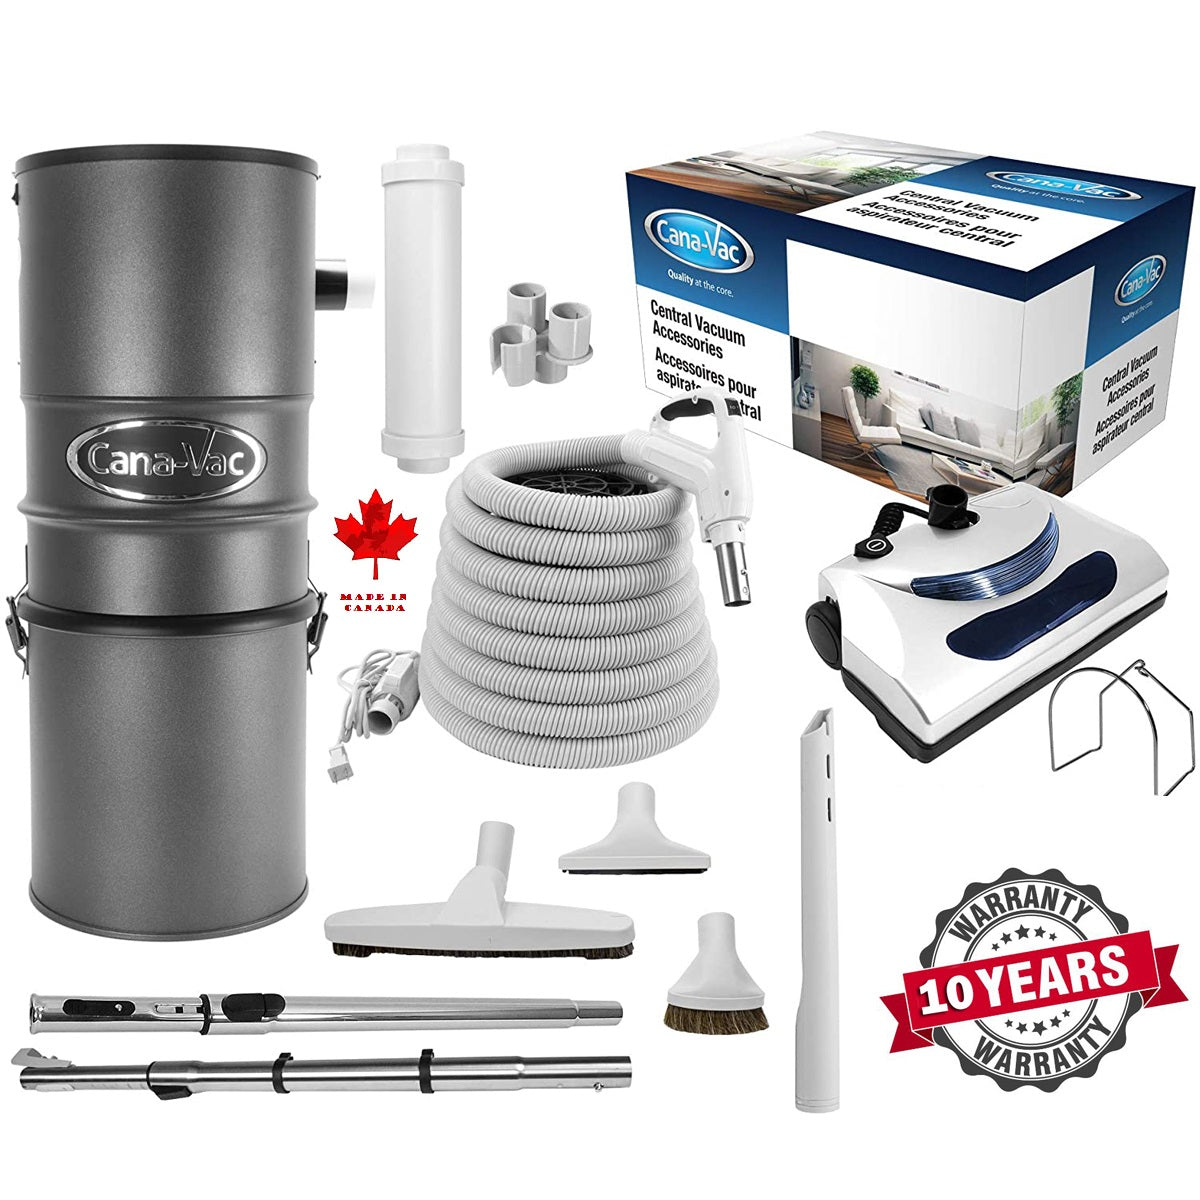 CanaVac Ethos CV700SP Compact Central Vacuum Cleaner With Deluxe Electric Package - 700AW for homes up to 8,000 Sq.F. - Super Vacs